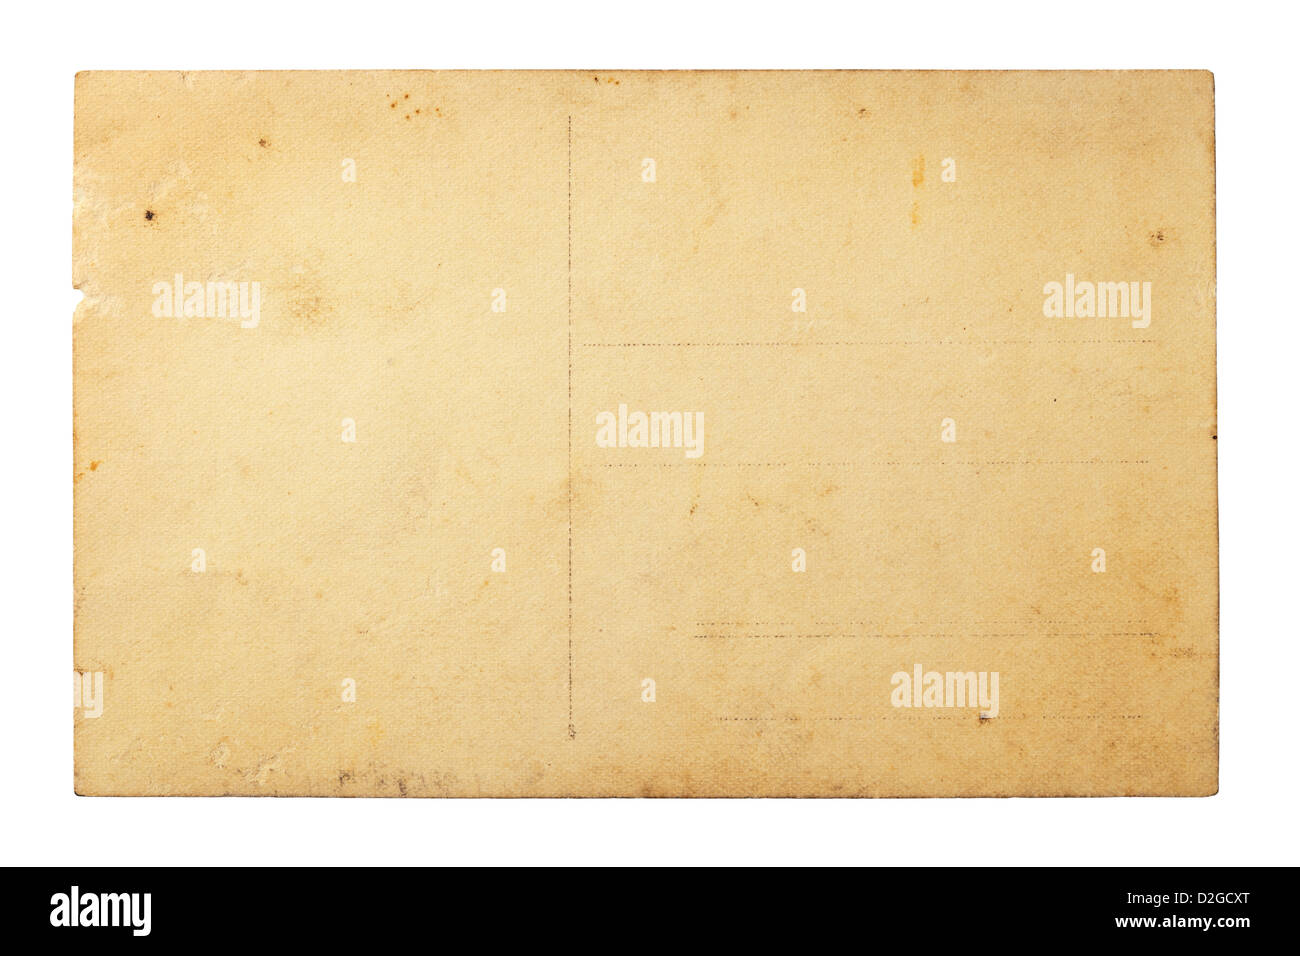 Old Vintage Postcard Isolated On White Reverse Side Close Up Top View